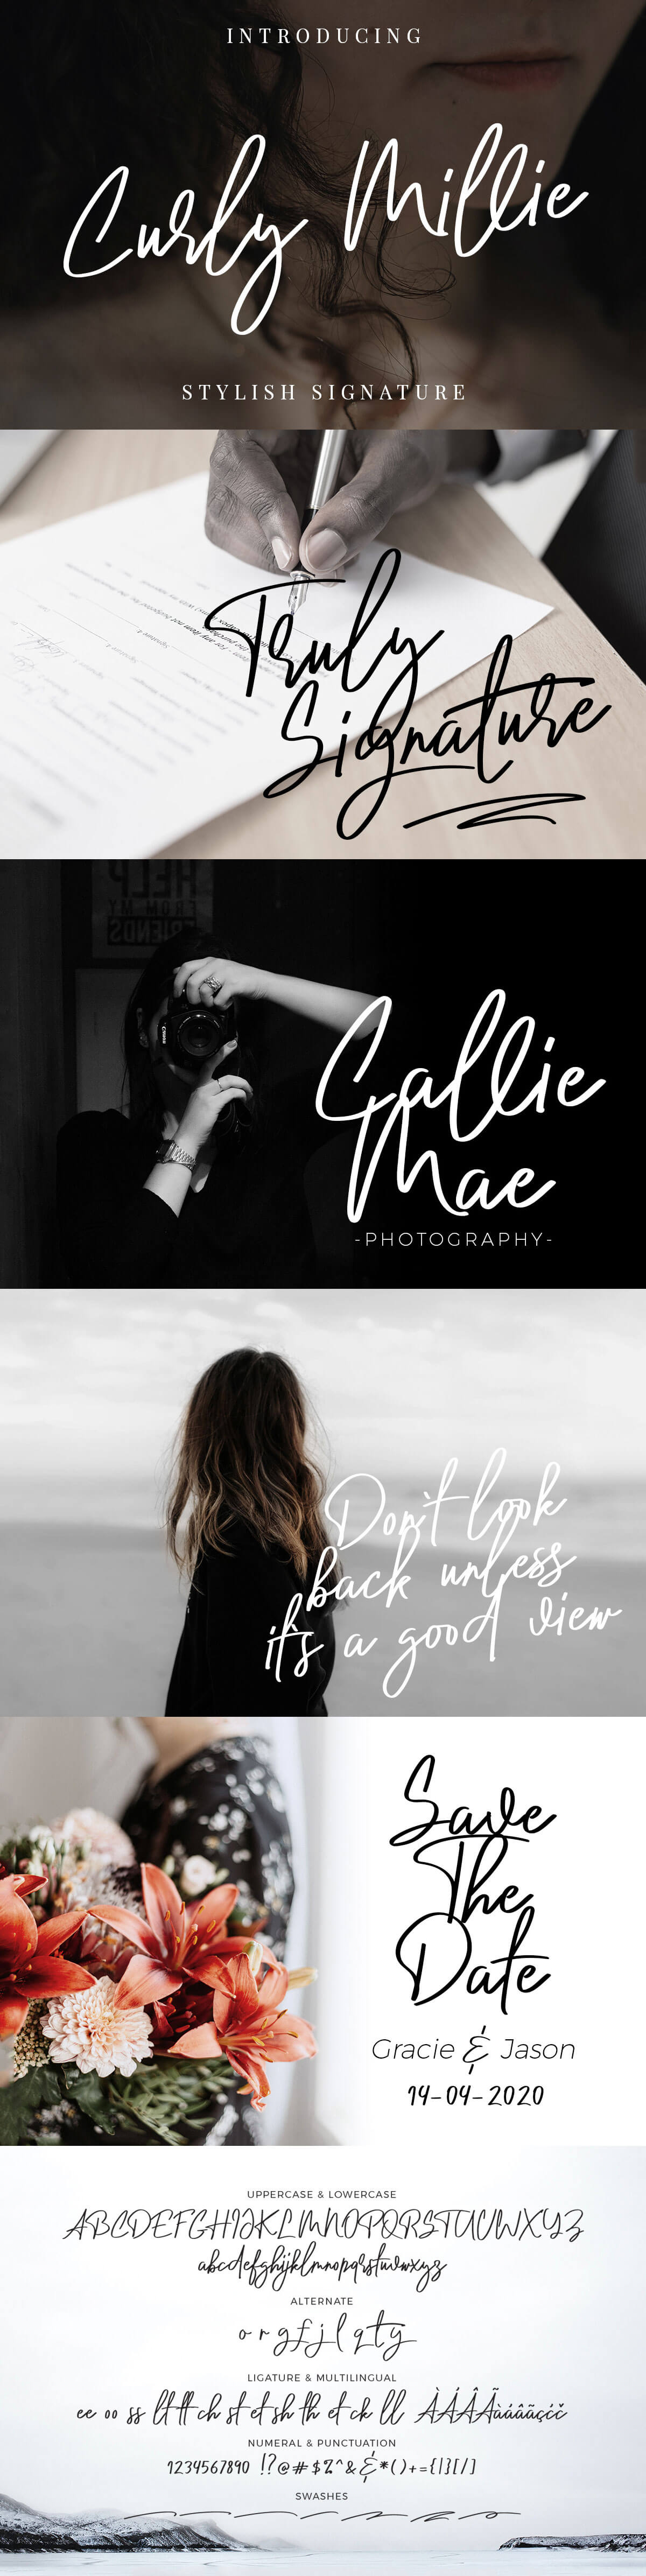 Free Curly Millie Signature Font